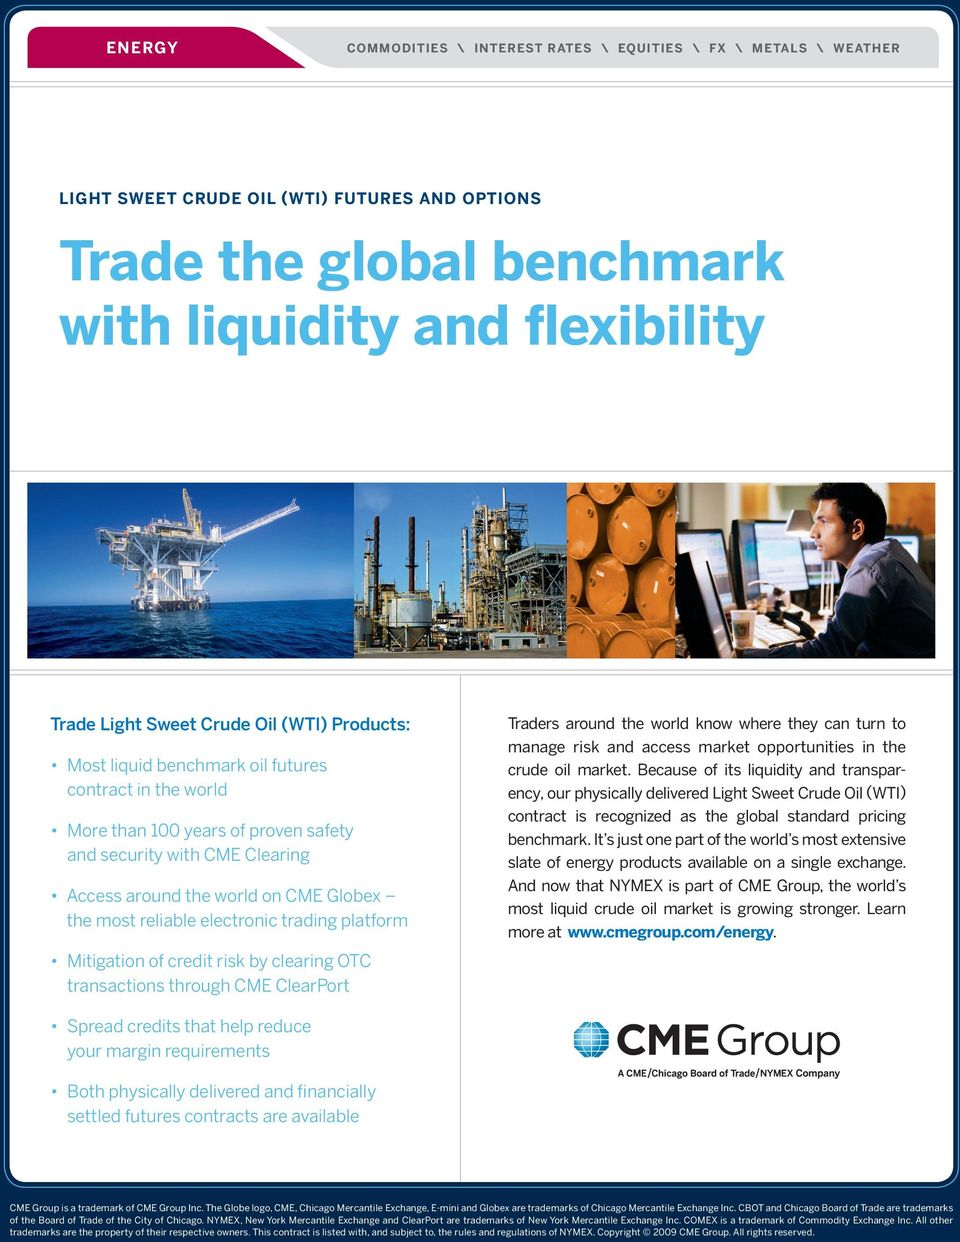 reliable electronic trading platform Mitigation of credit risk by clearing OTC transactions through CME ClearPort Traders around the world know where they can turn to manage risk and access market